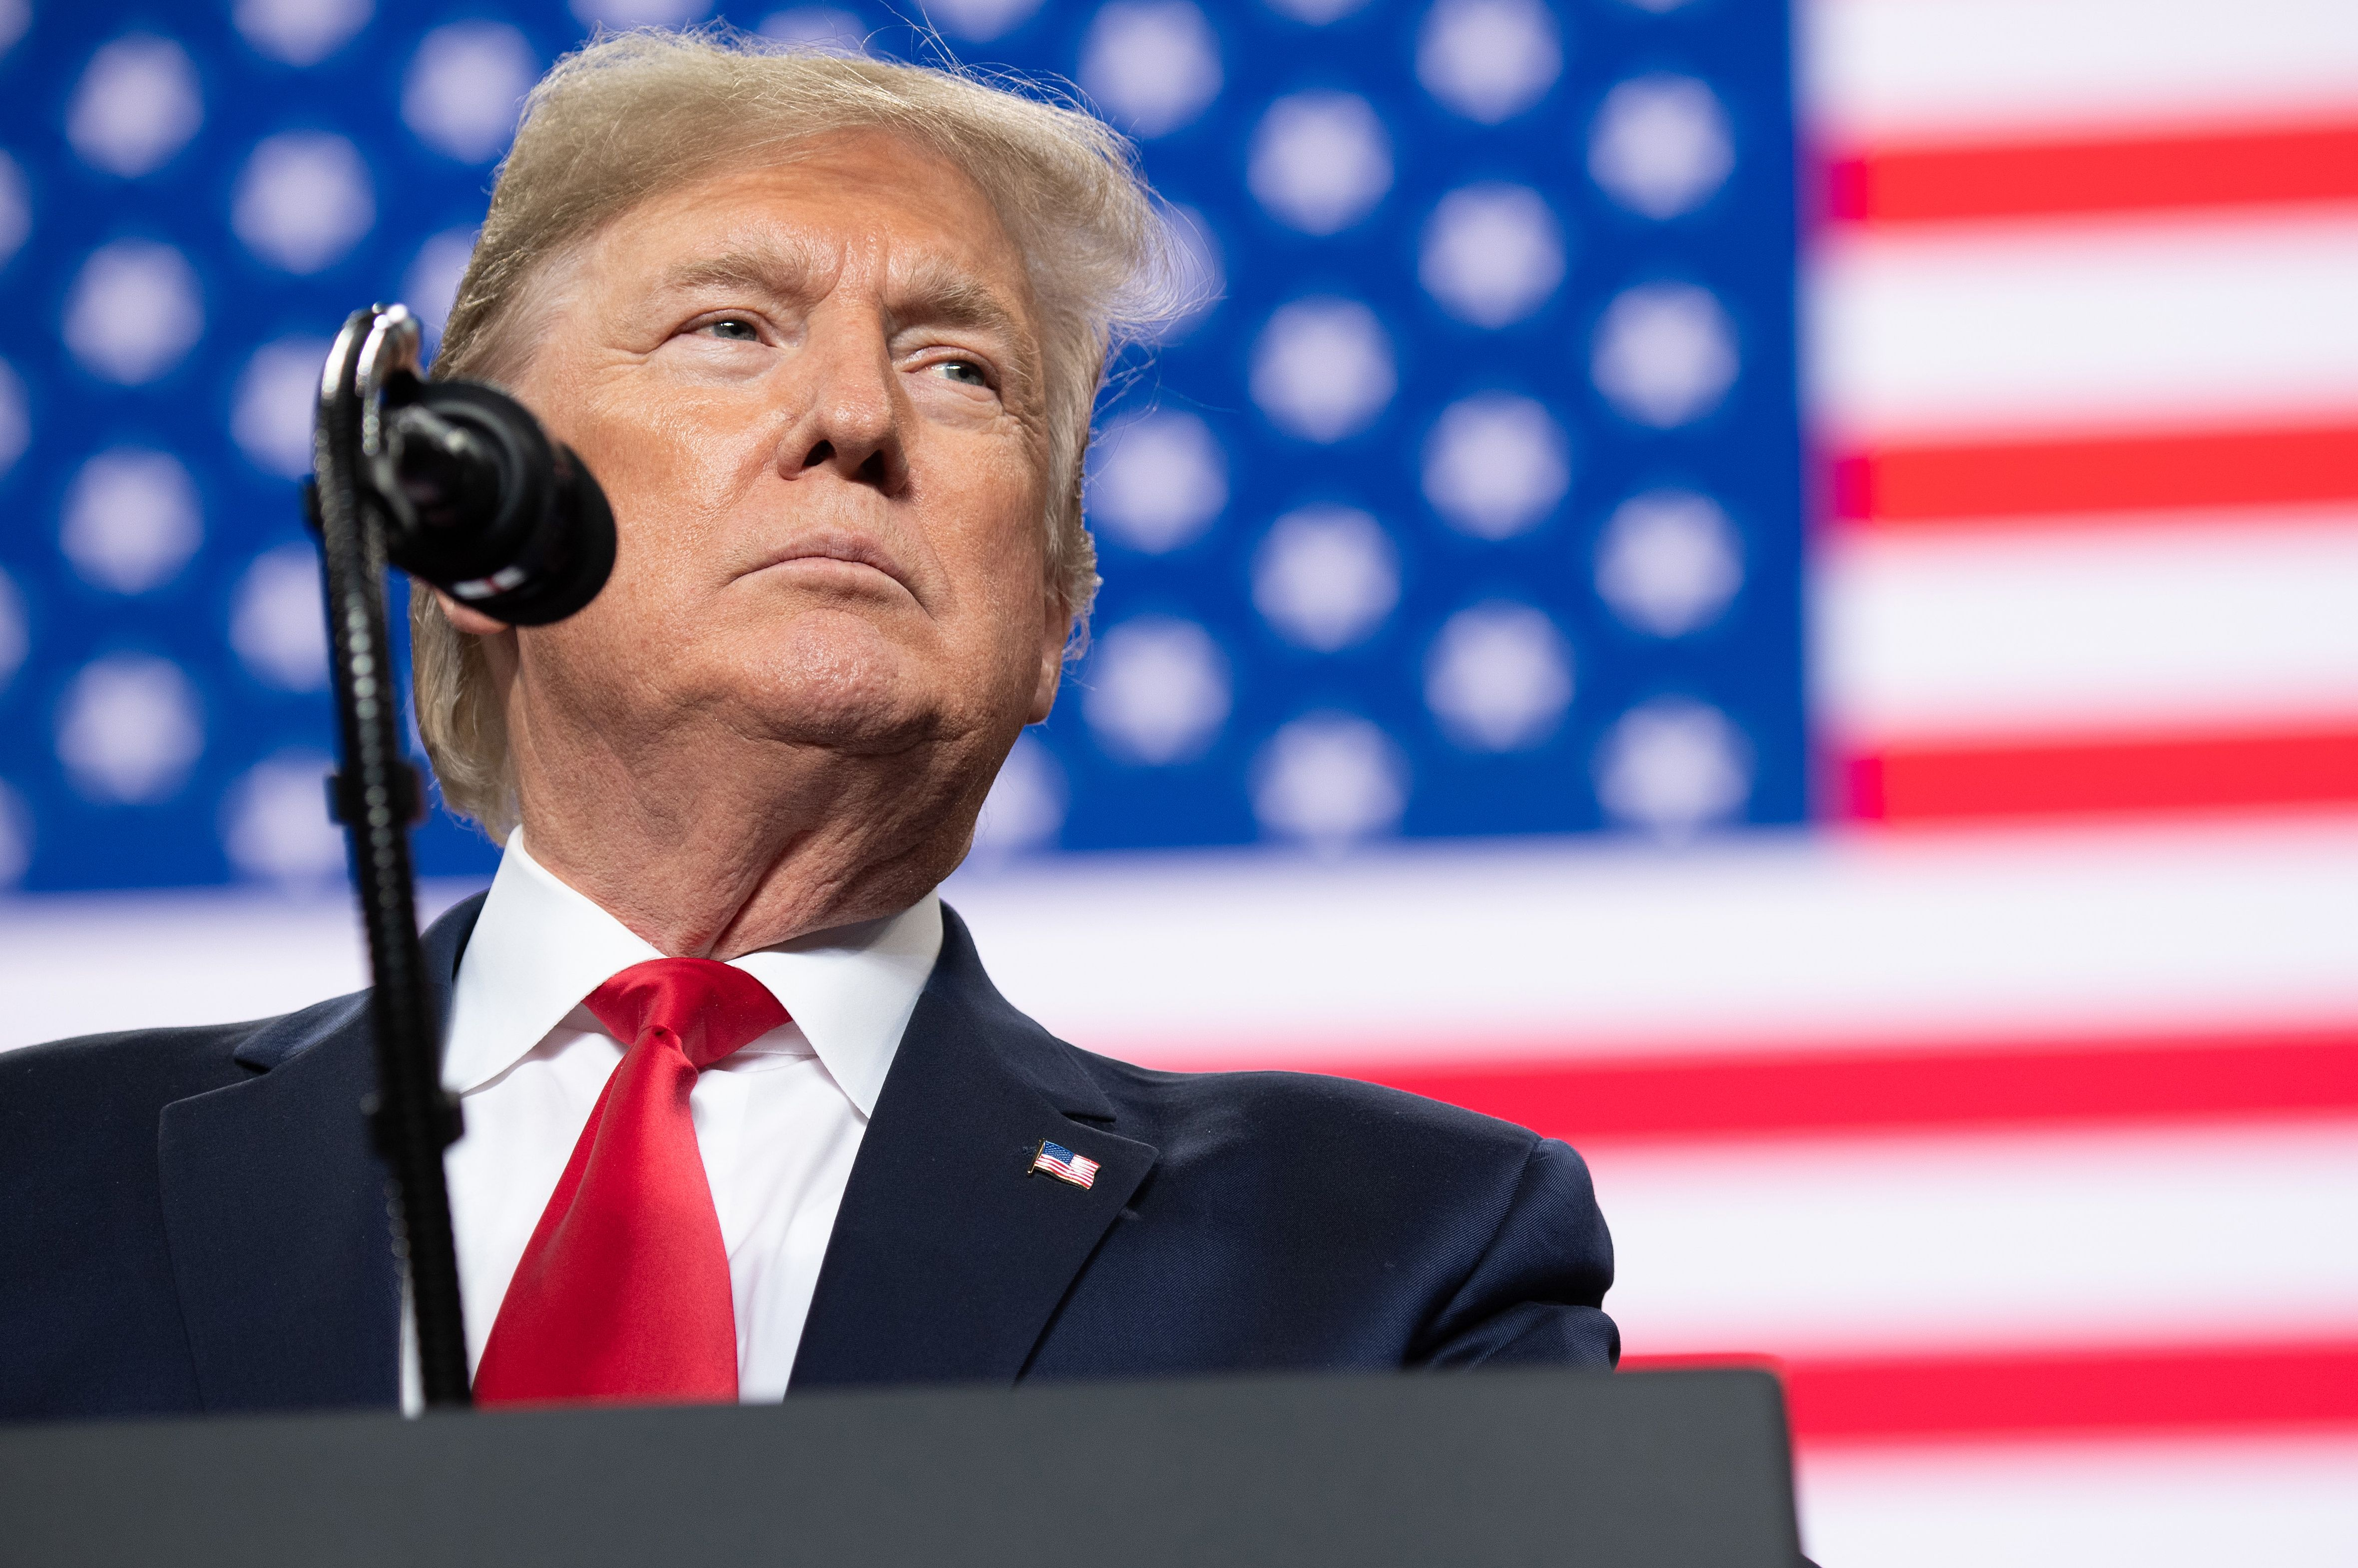 """President Donald Trump speaks during a """"Keep America Great"""" campaign rally at Huntington Center in Toledo, Ohio, on January 9, 2020. (Photo by SAUL LOEB / AFP) (Photo by SAUL LOEB/AFP via Getty Images)"""